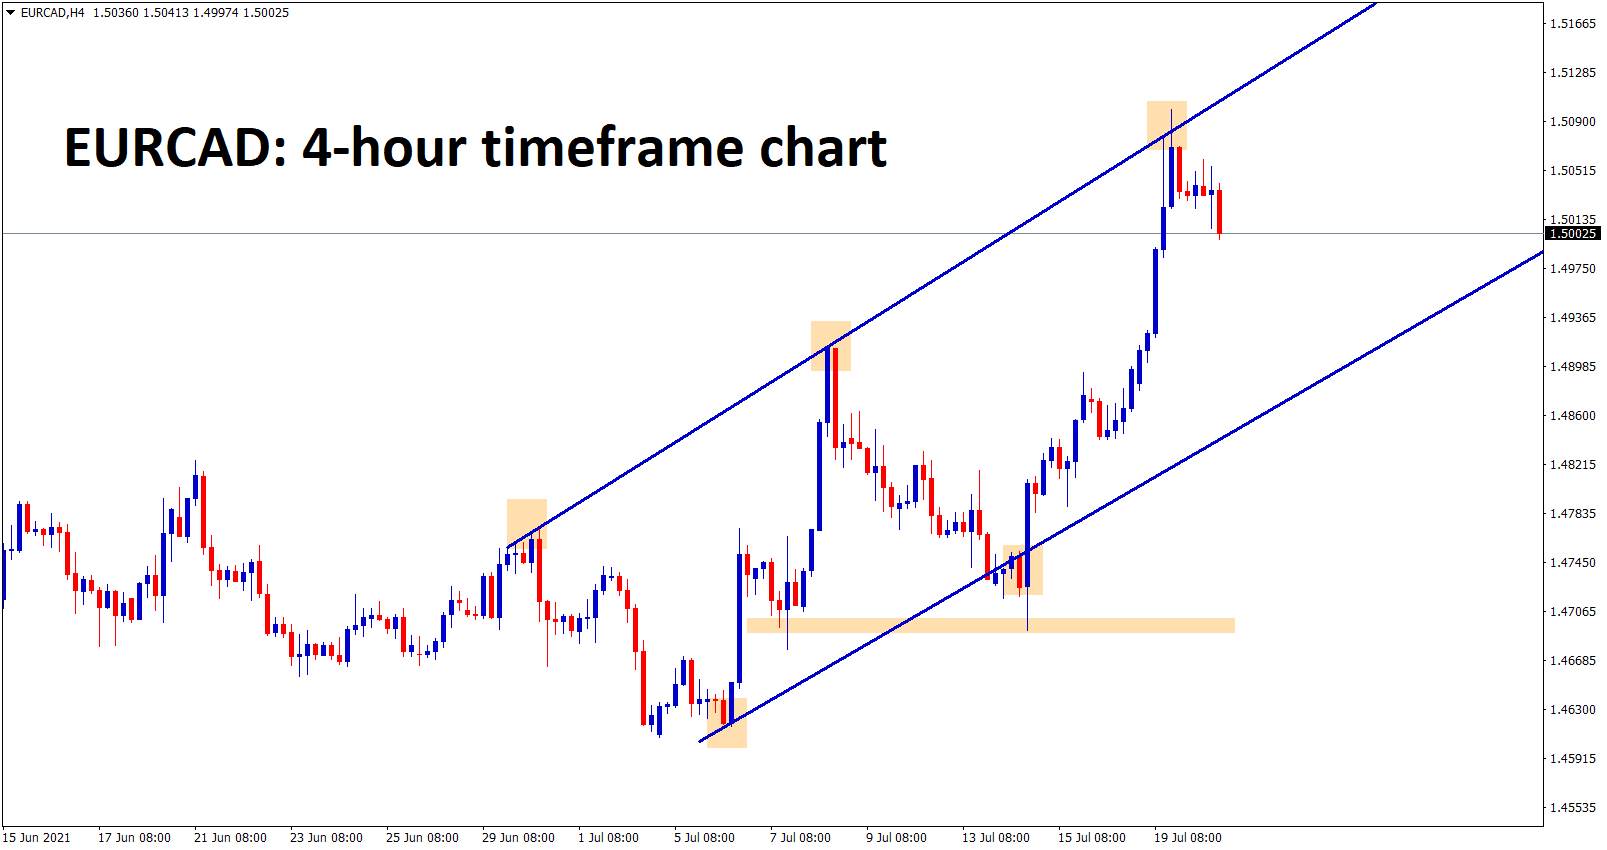 EURCAD flew up to the higher high zone of an uptrend line